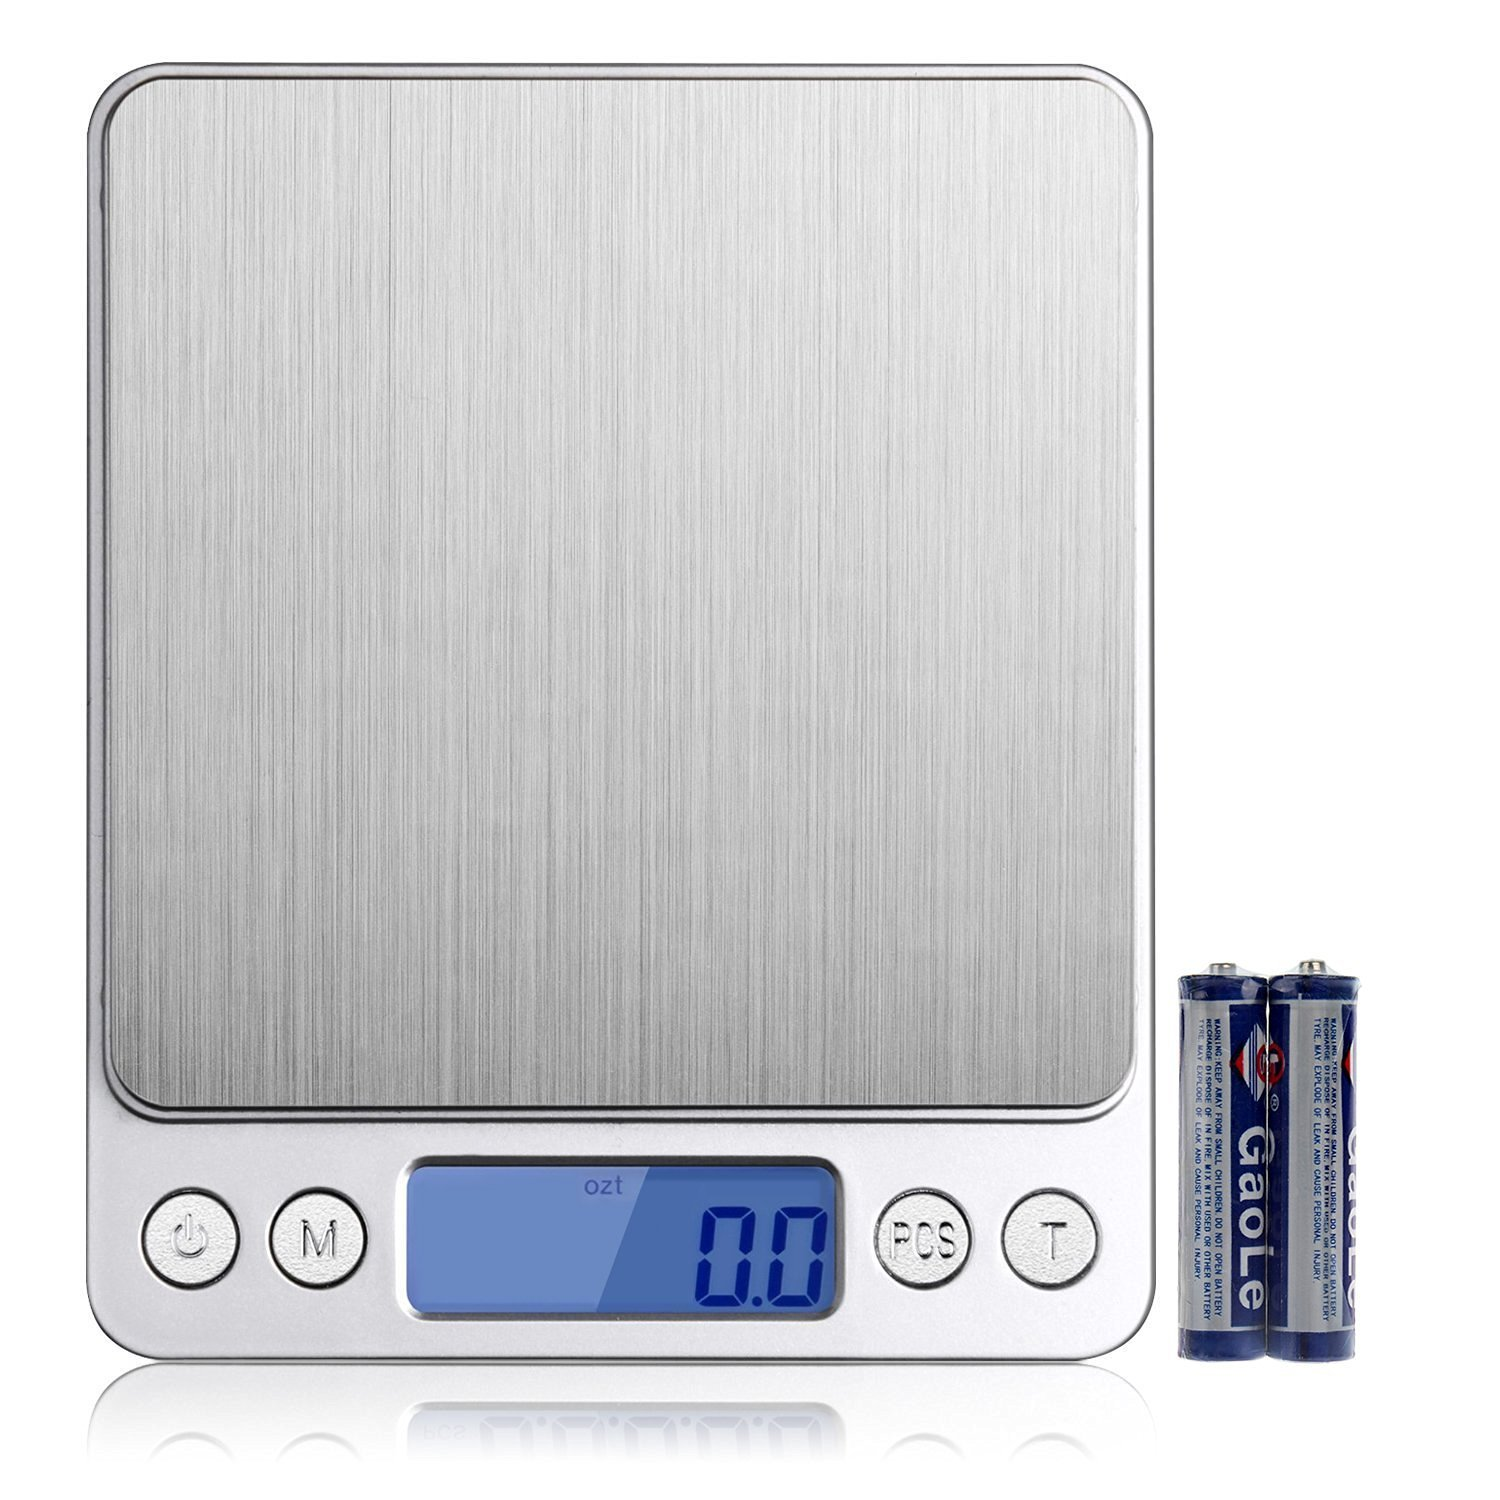 Idaodan 3000g 0 1g digital kitchen scales grams scales electronic pro pocket food scale with back lit lcd display tare hold and pcs features